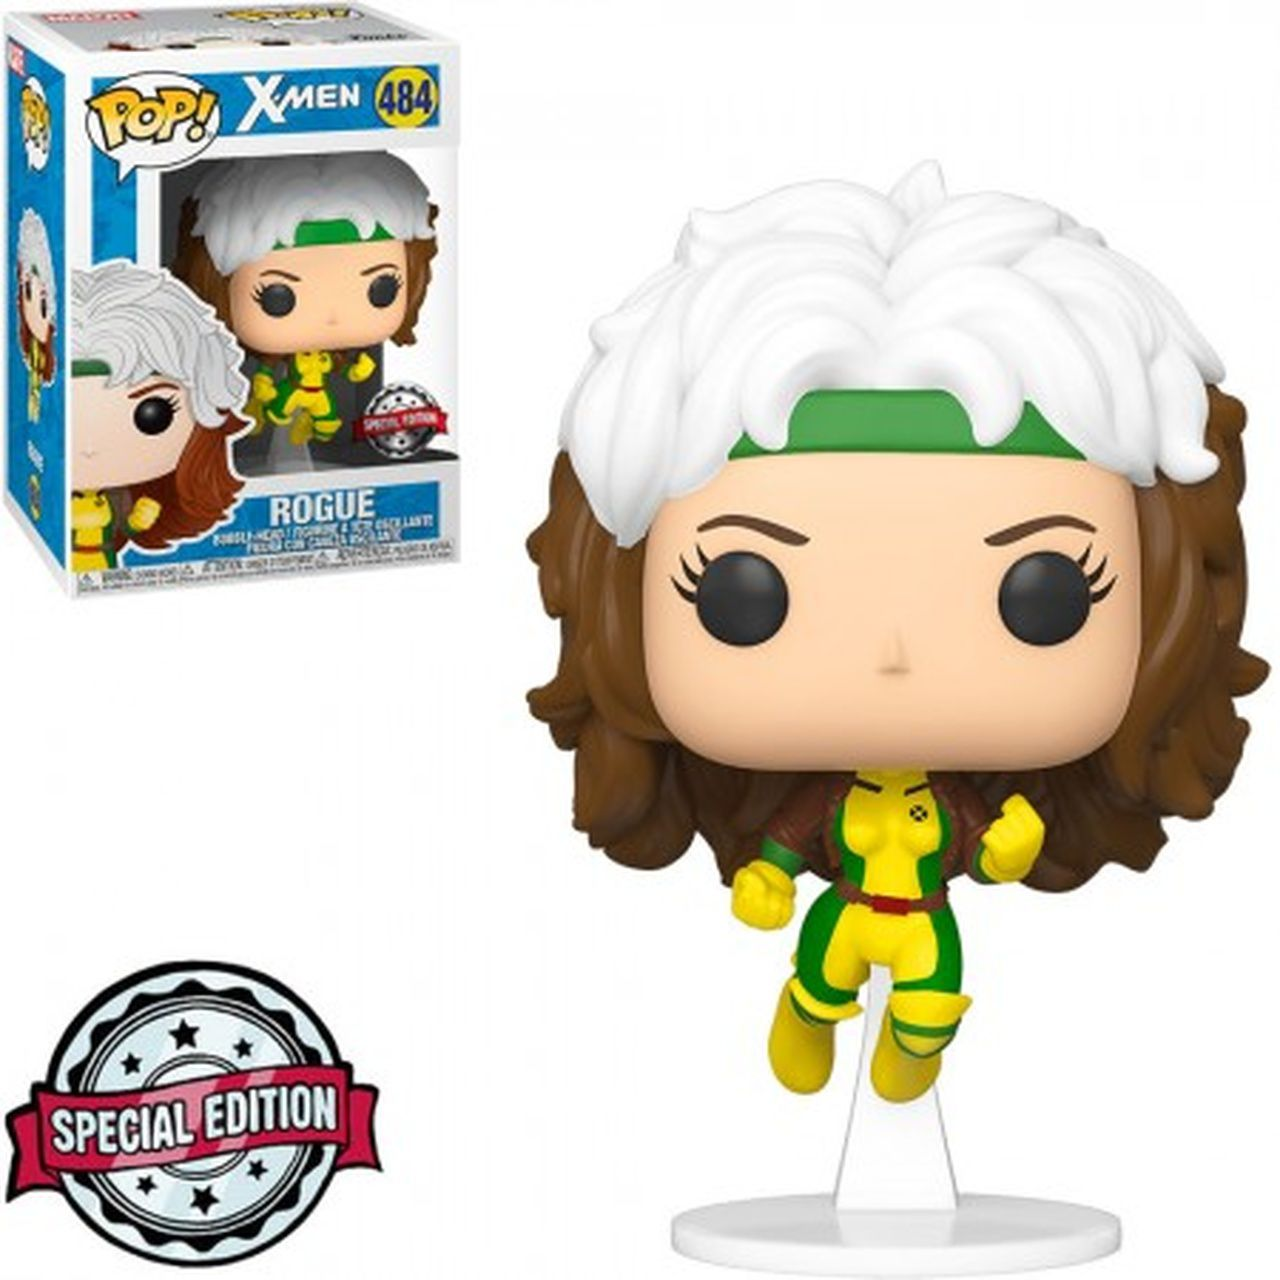 Funko Pop! Rogue (Vampira): X-Men (Exclusivo) Special Edition #484 - Funko